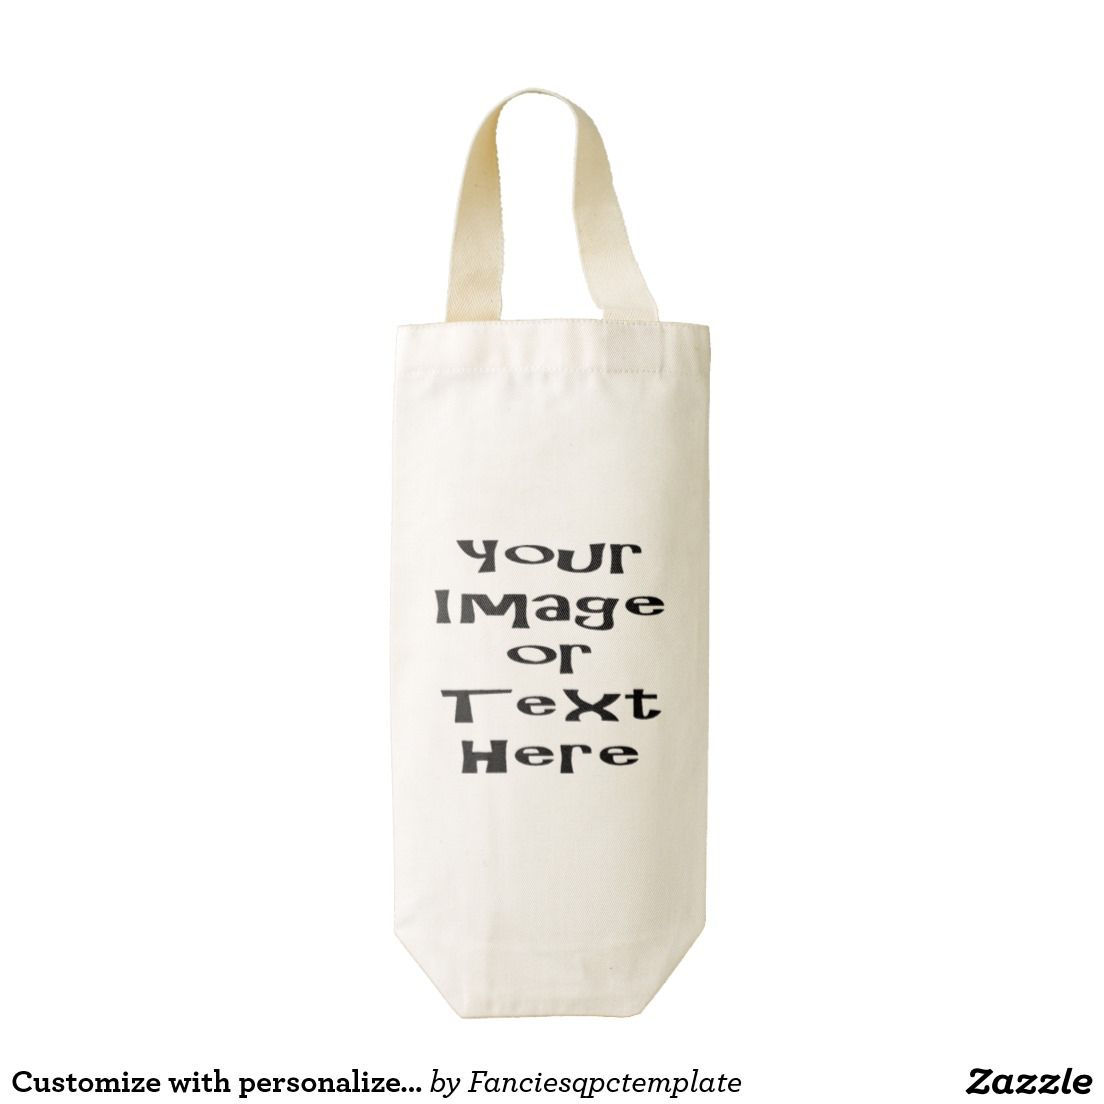 Customize With Personalized Pictures And Text Zazzle HEART